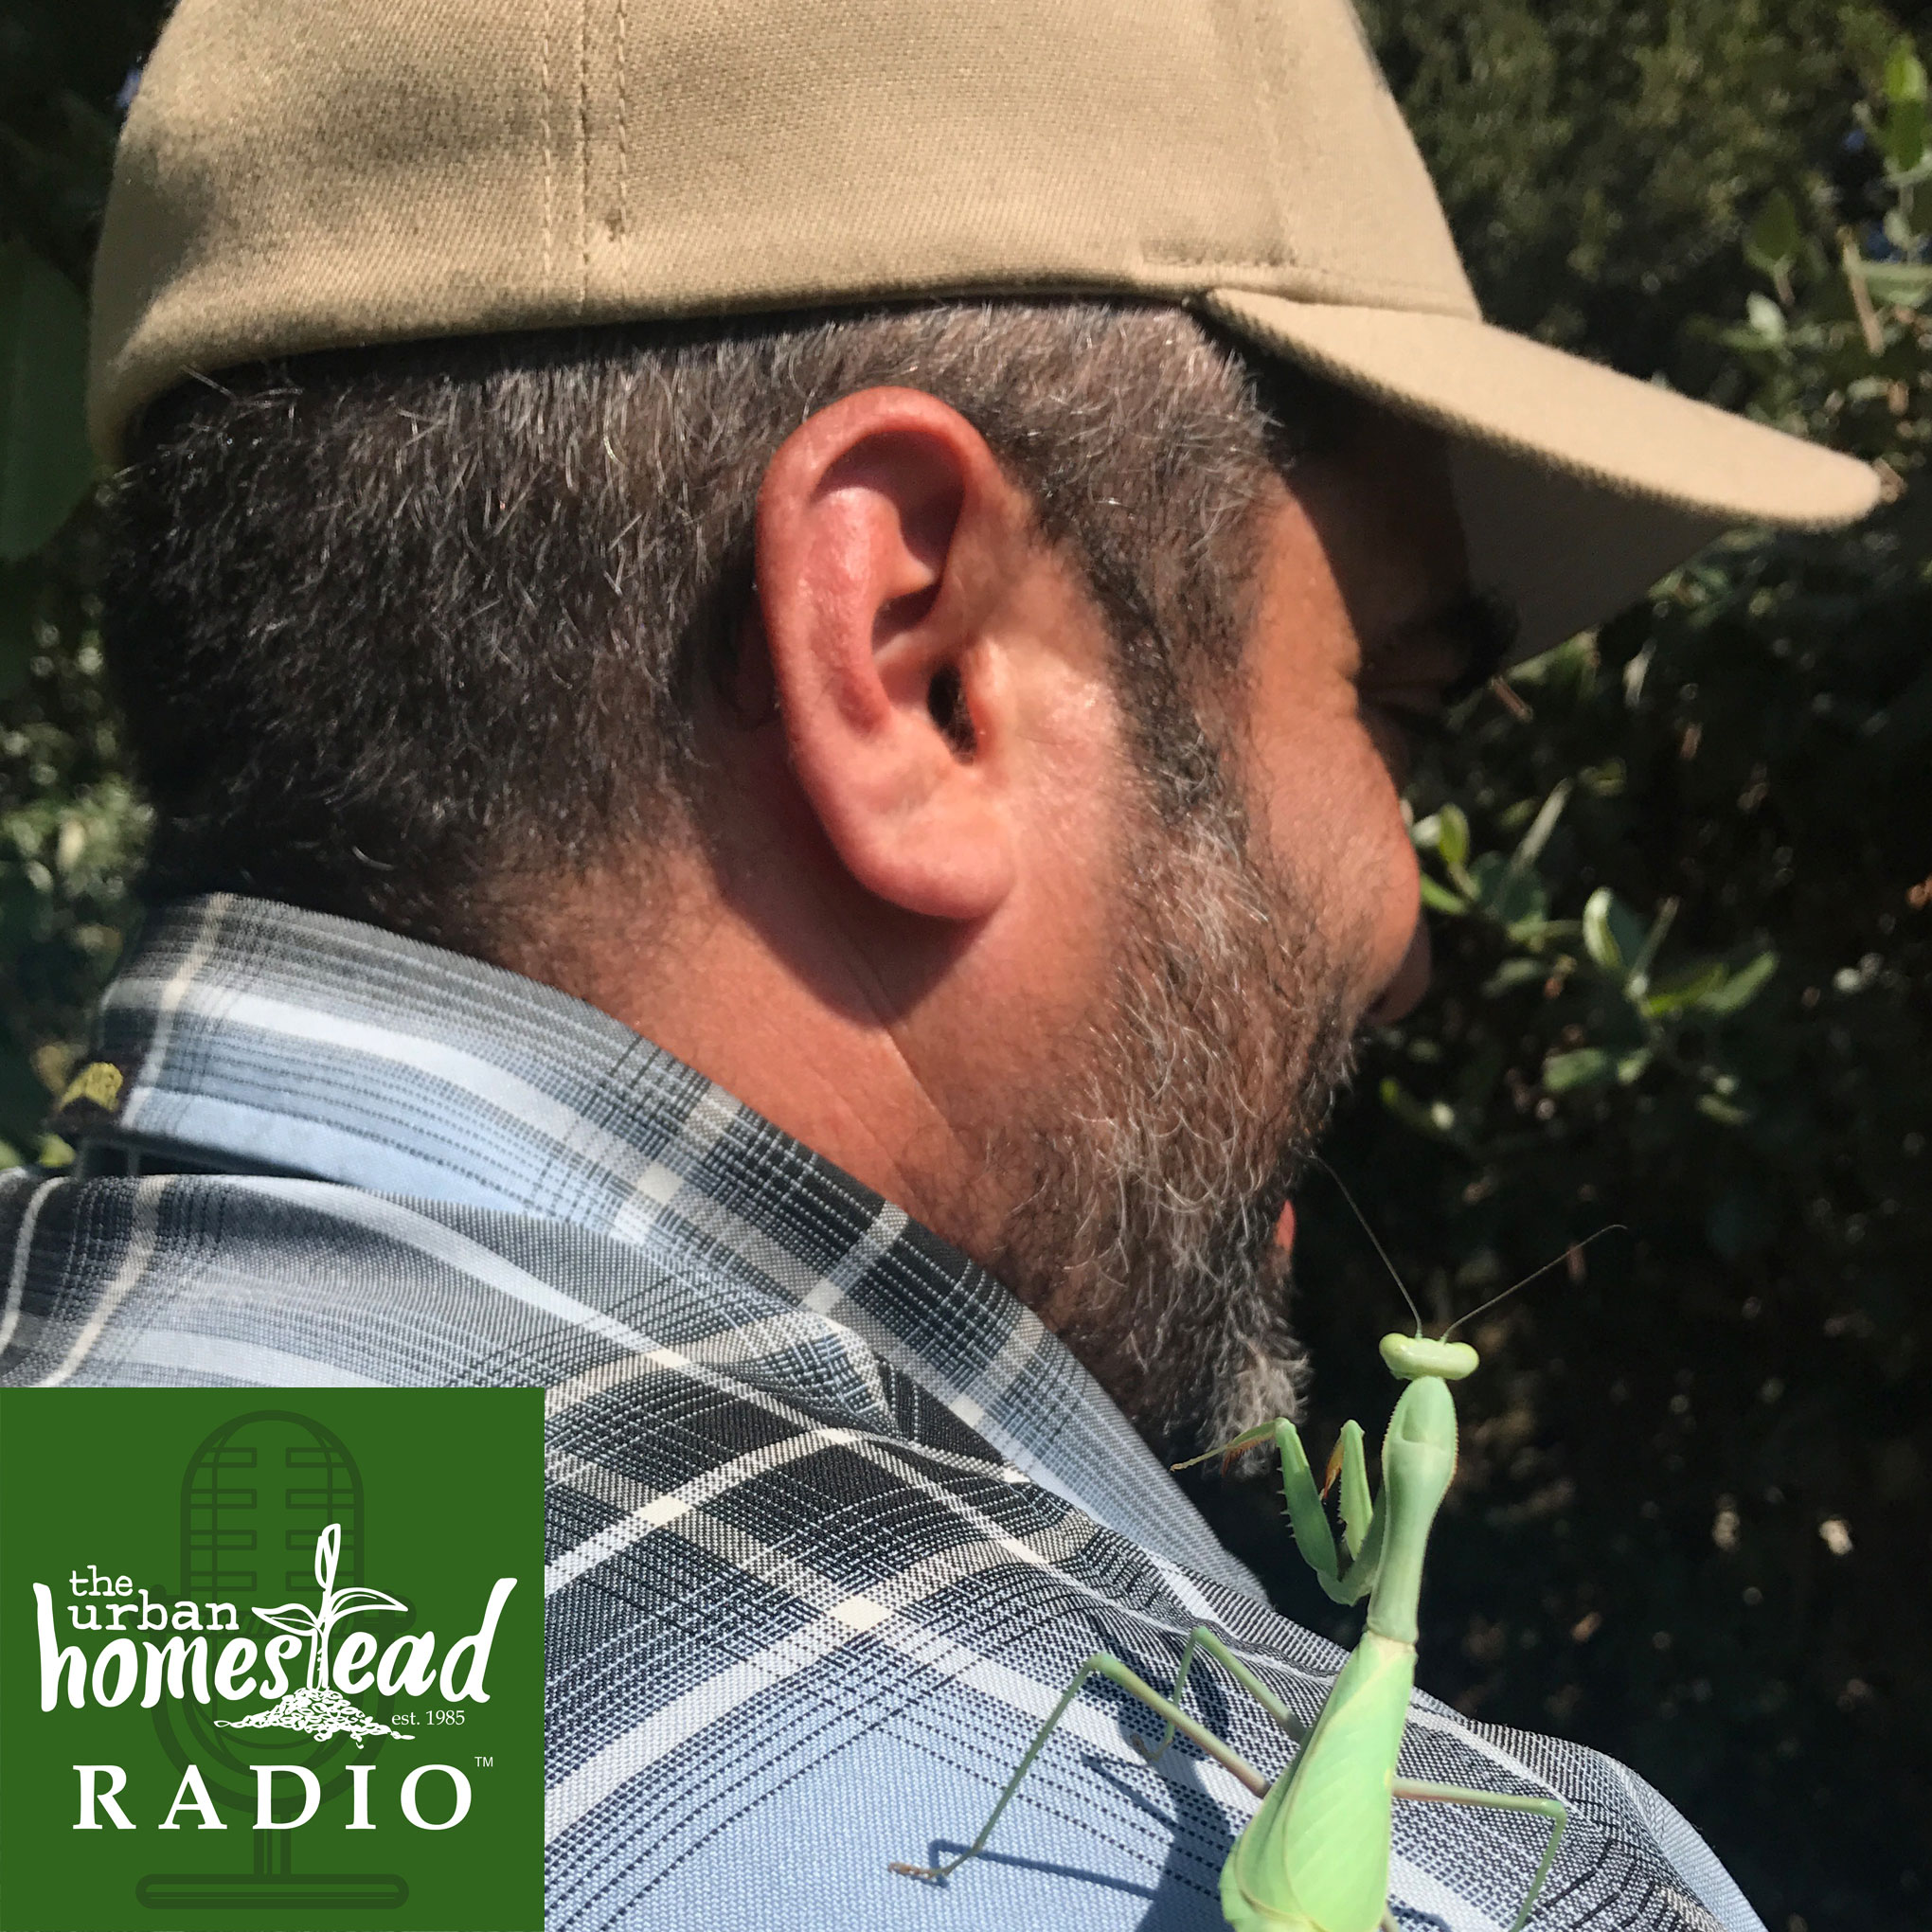 Urban Homestead Radio Episode 59: Justin Dervaes Interview 2018 Part 2